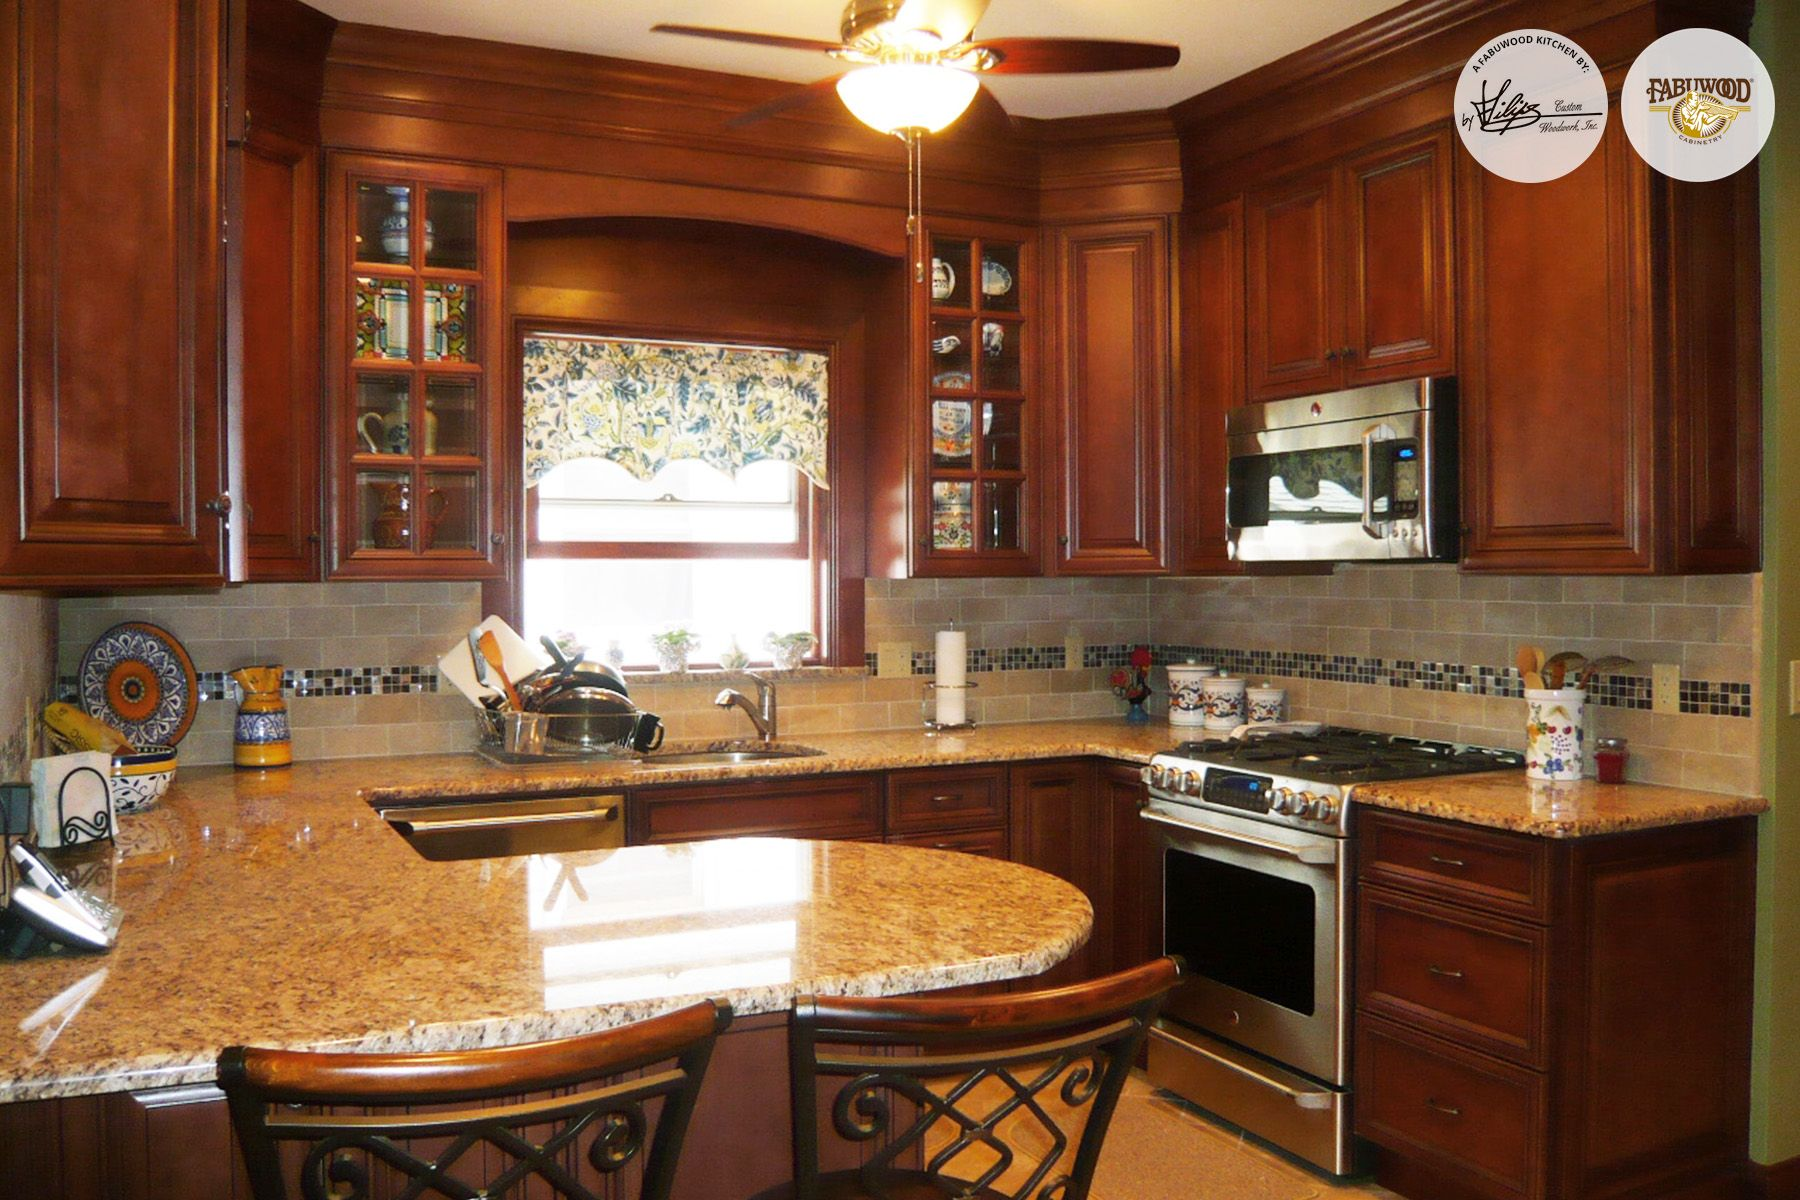 Thereu0027s Something About Darker Woods Like Our Elite Cabinets In Cinnamon  That Add Another Dimension To